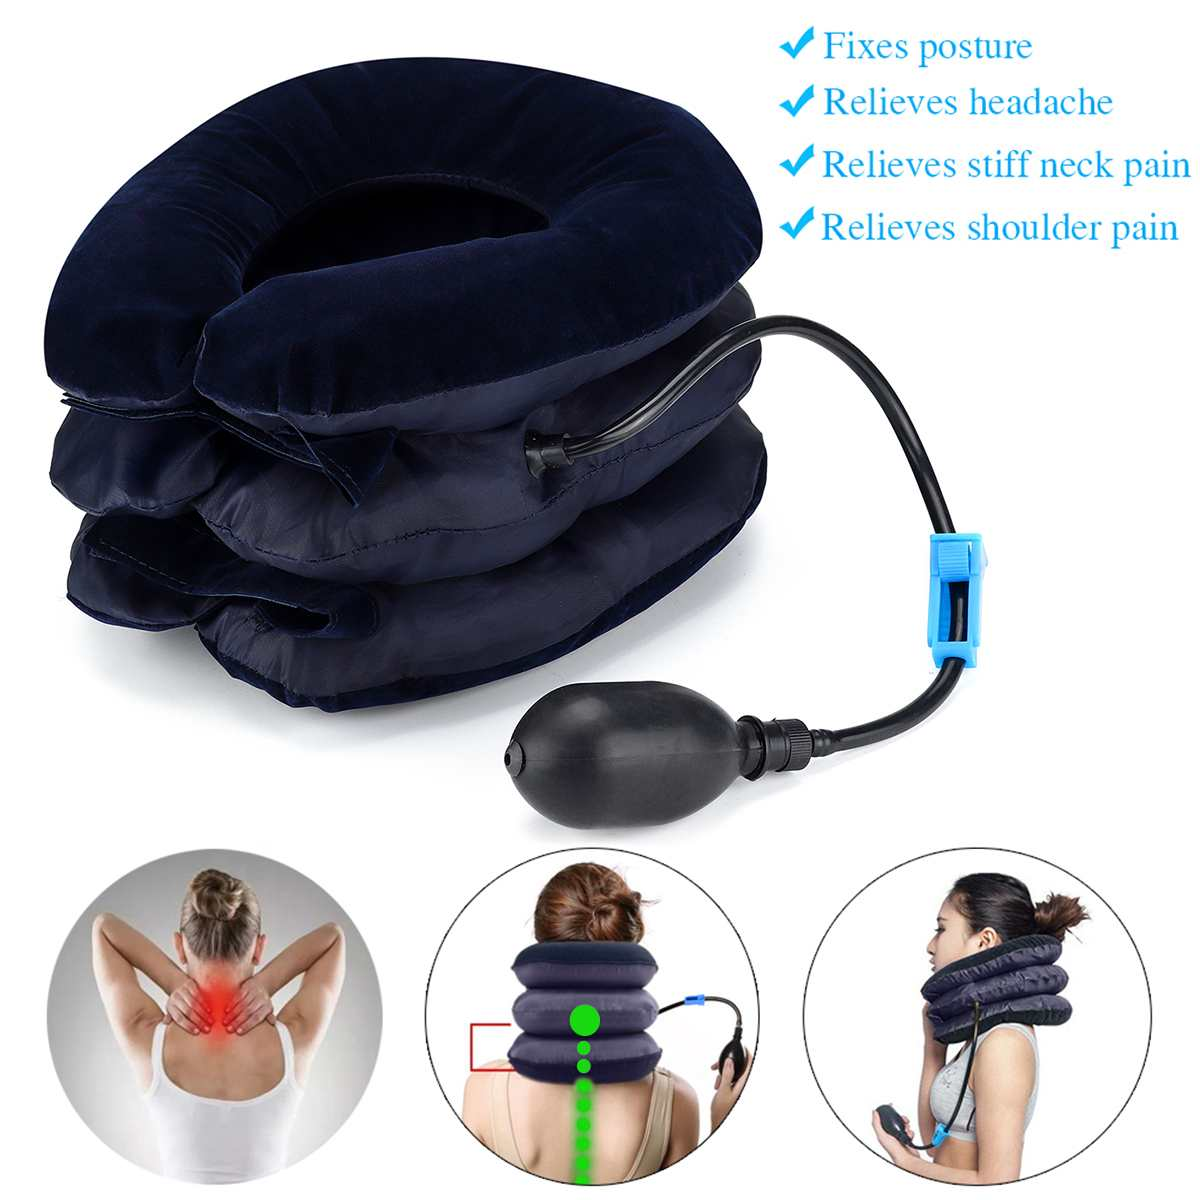 Neck Tractor Inflatable Air Inflatable Pillow Cervical Neck Head Traction Support Massage Neck Brace Pain Relief Device